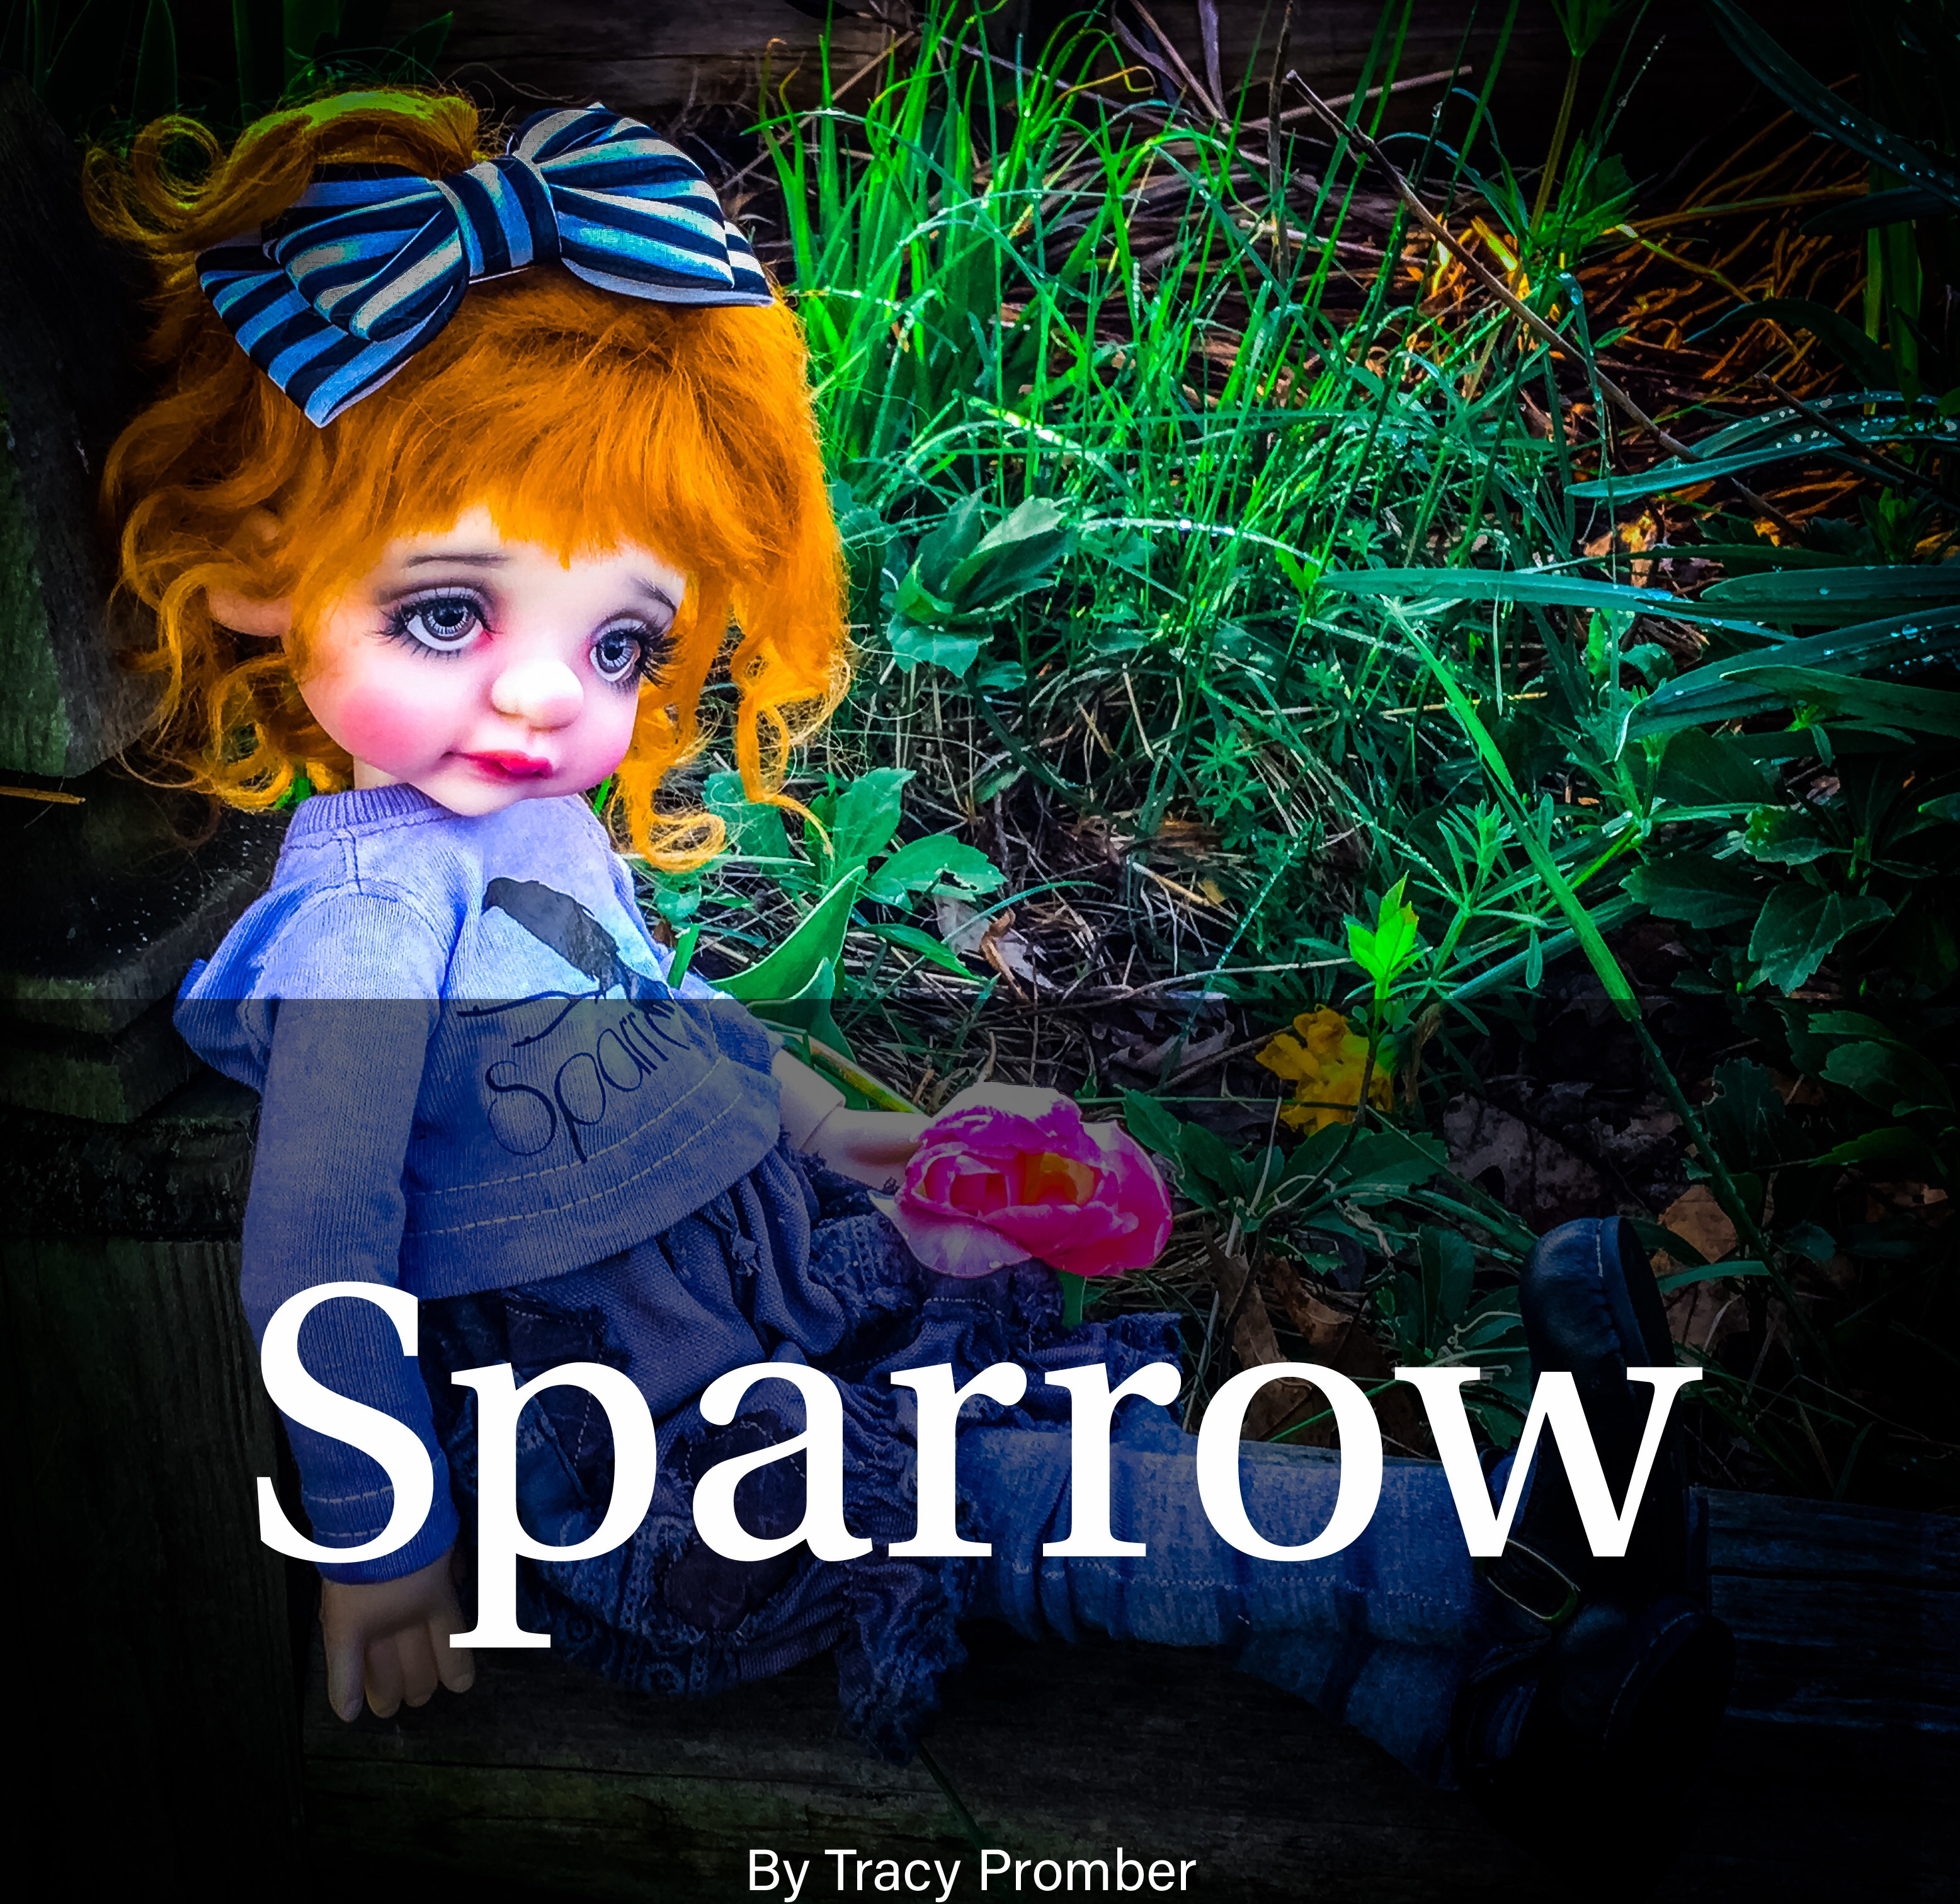 Sparrow by Tracy Promber